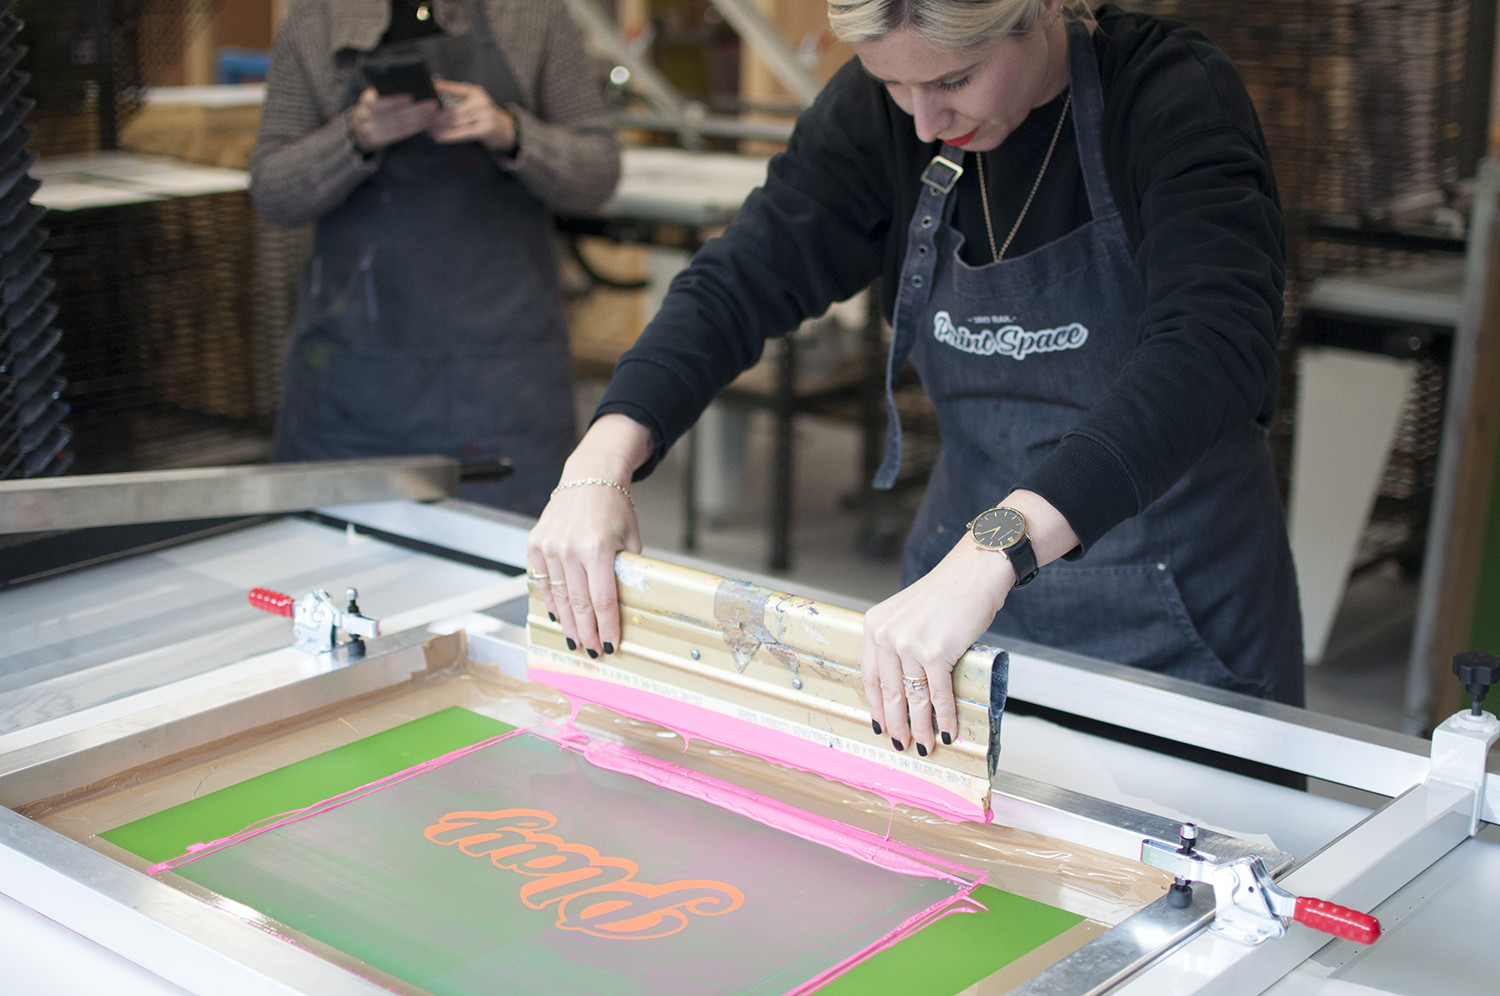 Intermediate Paper Printing Course  by 3rd Rail Print Space - art in London